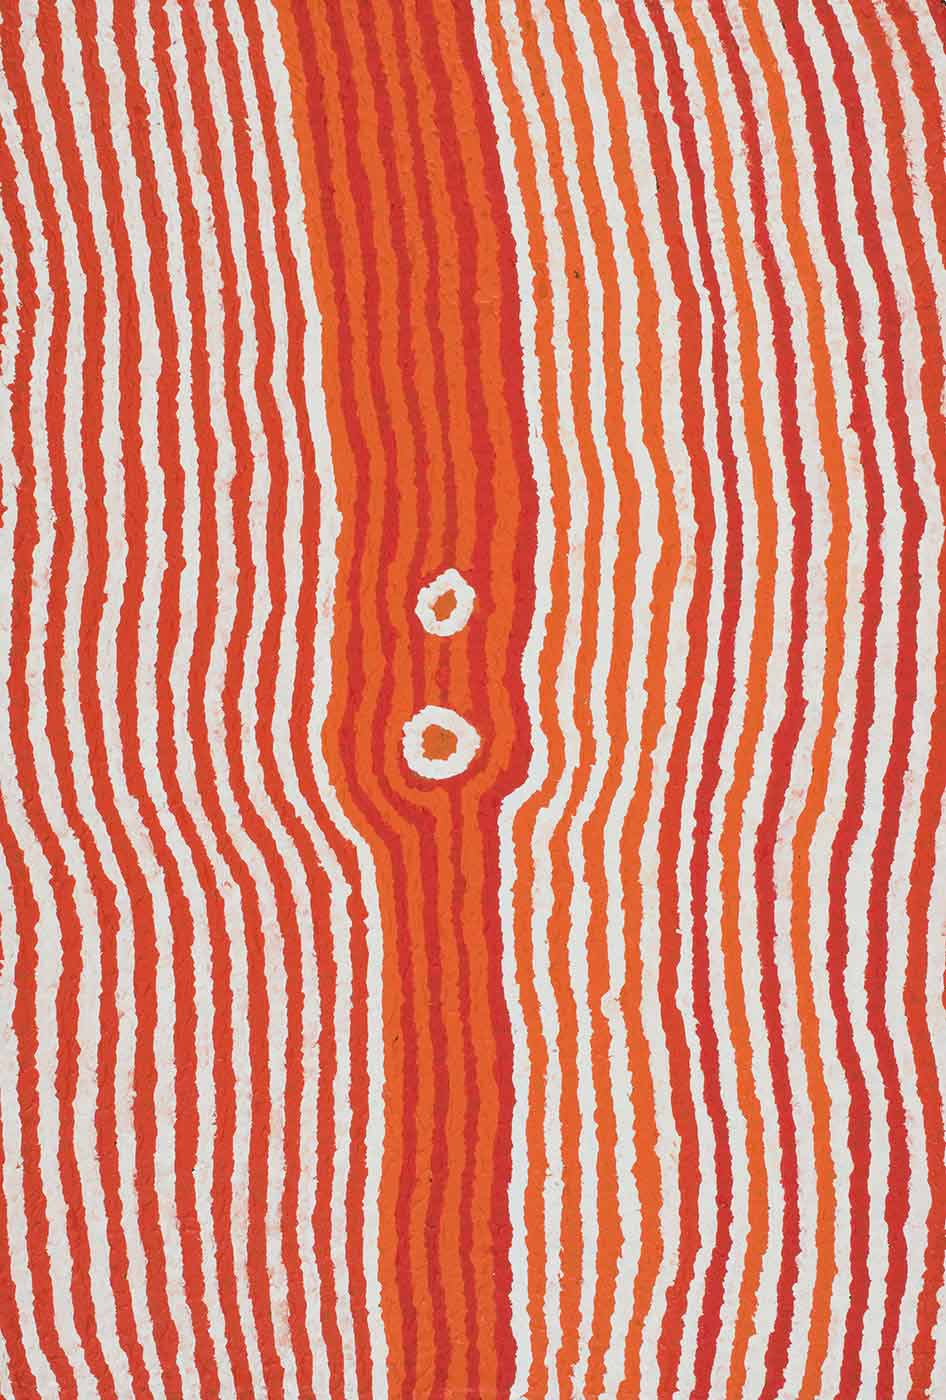 A painting on brown linen with orange, red and white vertical stripes with a darker central section. In the centre there are two white and orange circles. - click to view larger image